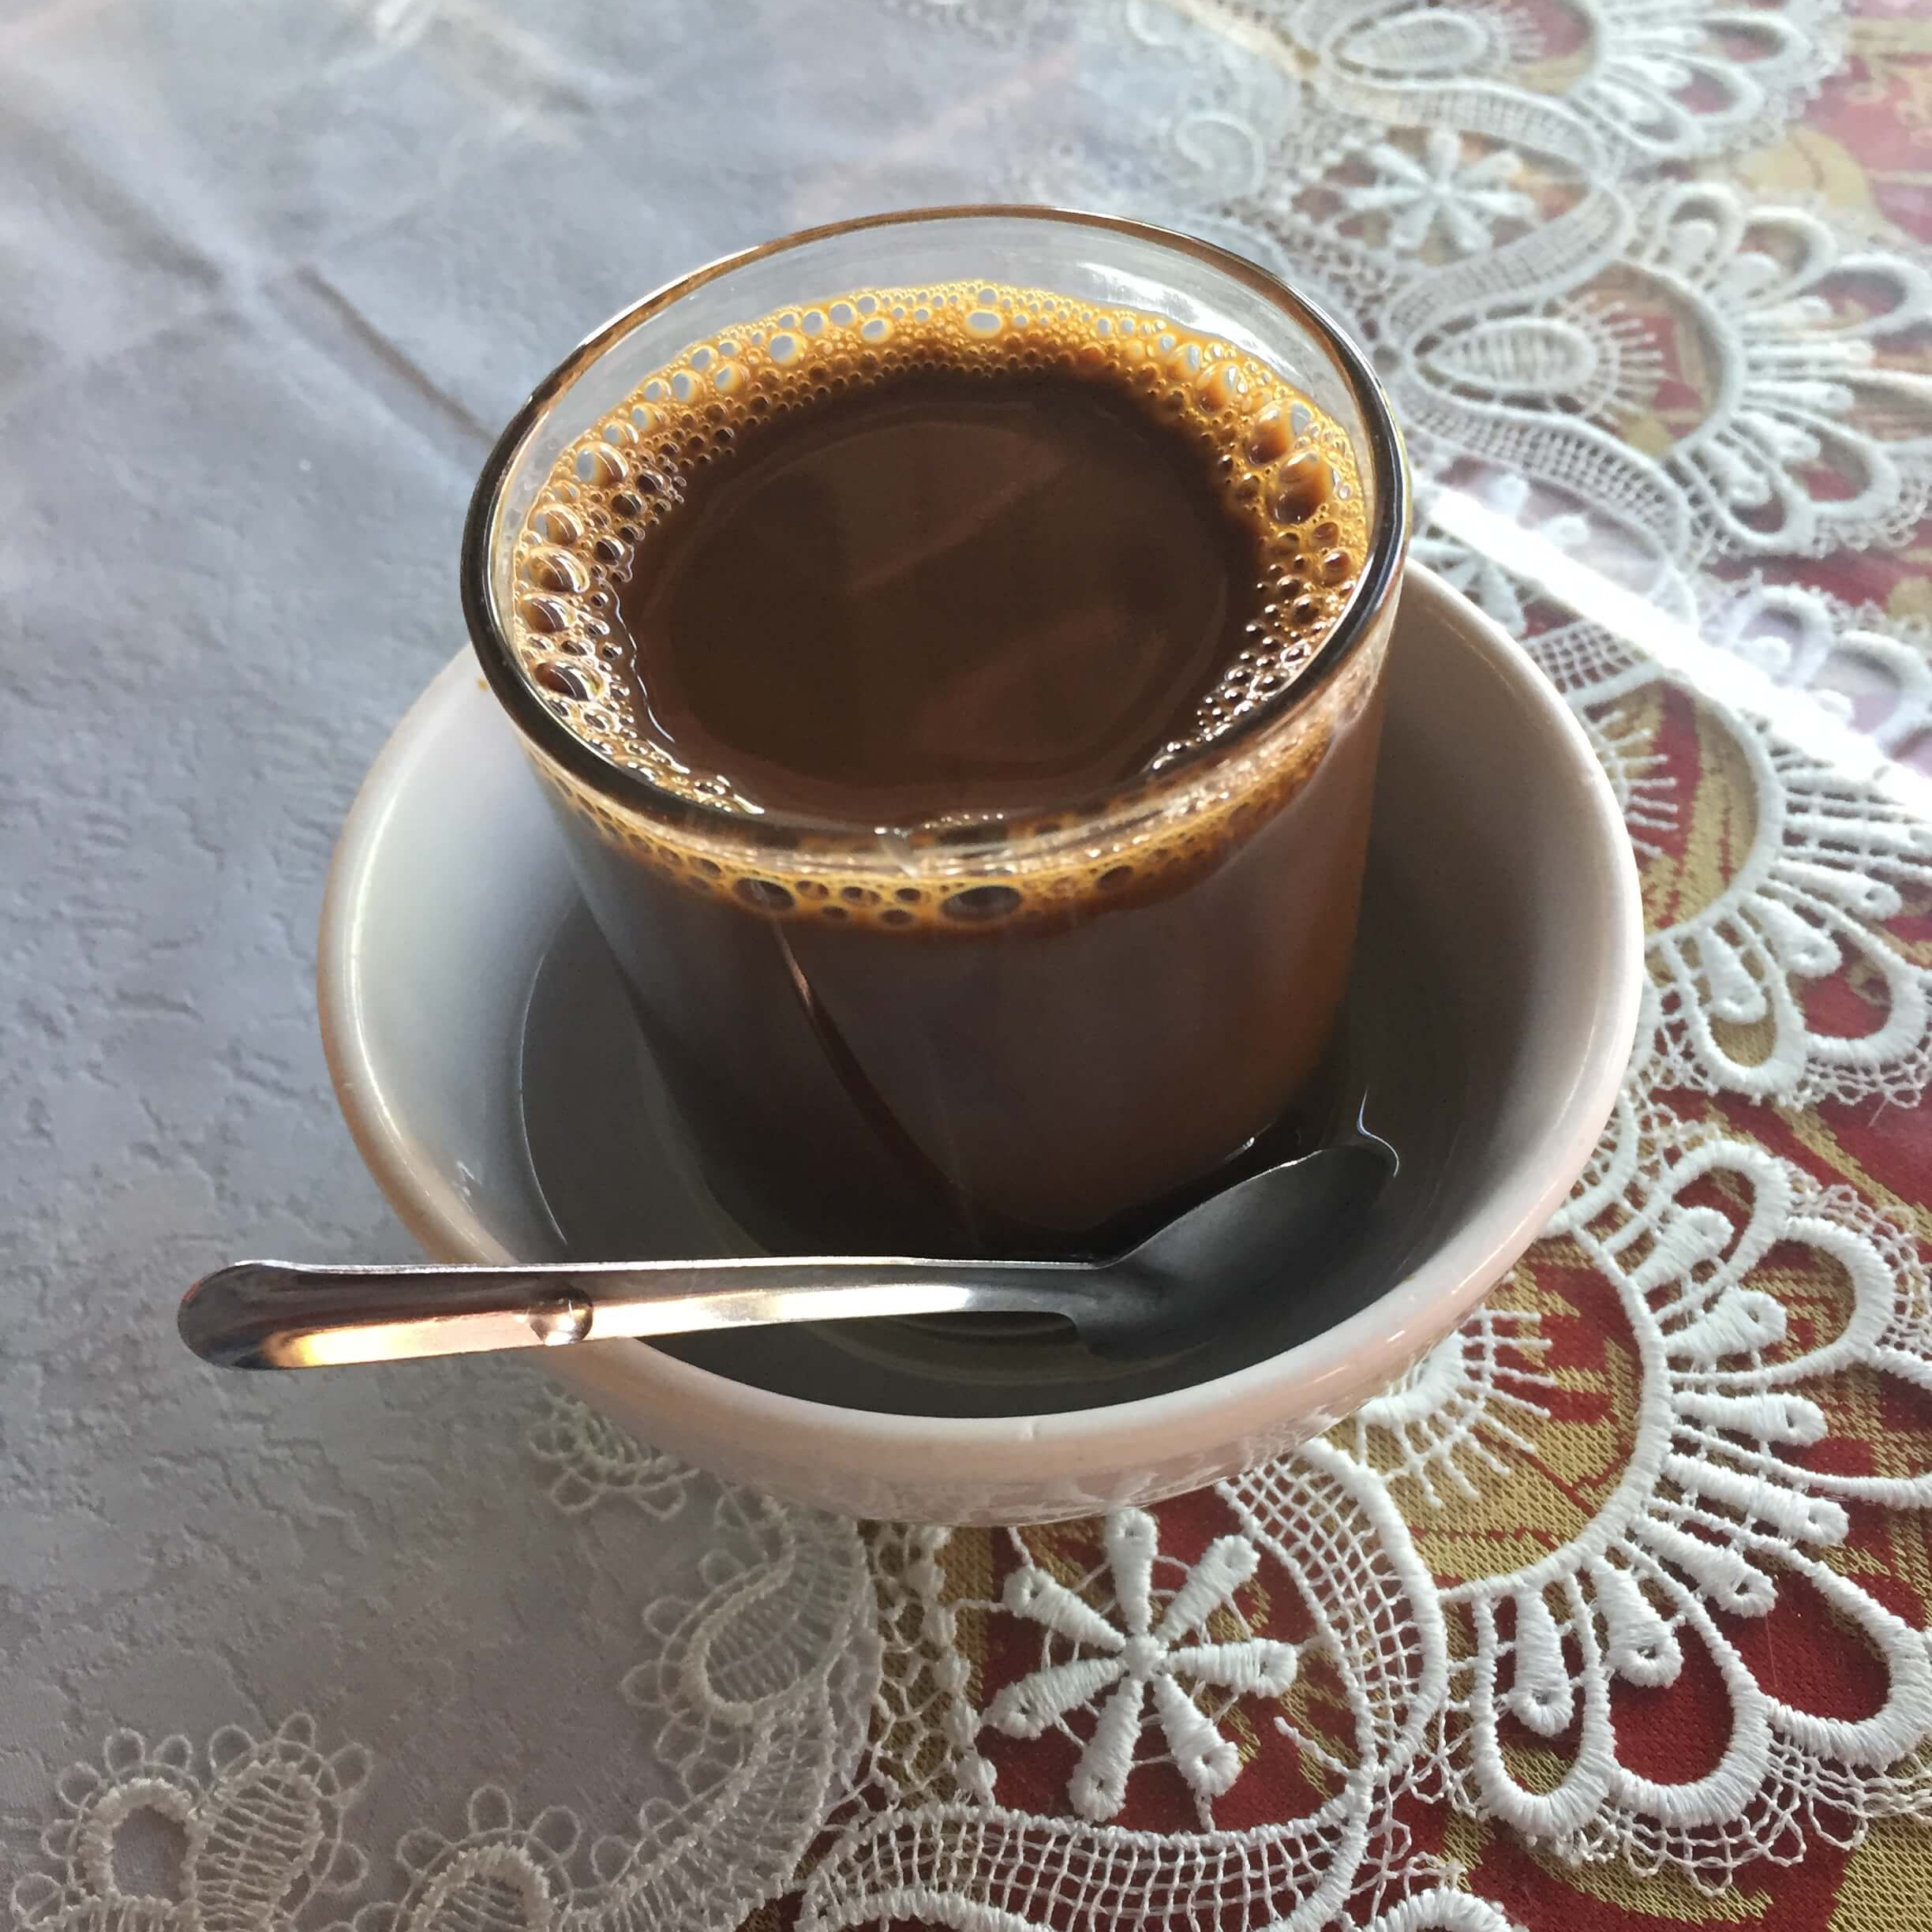 Coffee in Vietnam